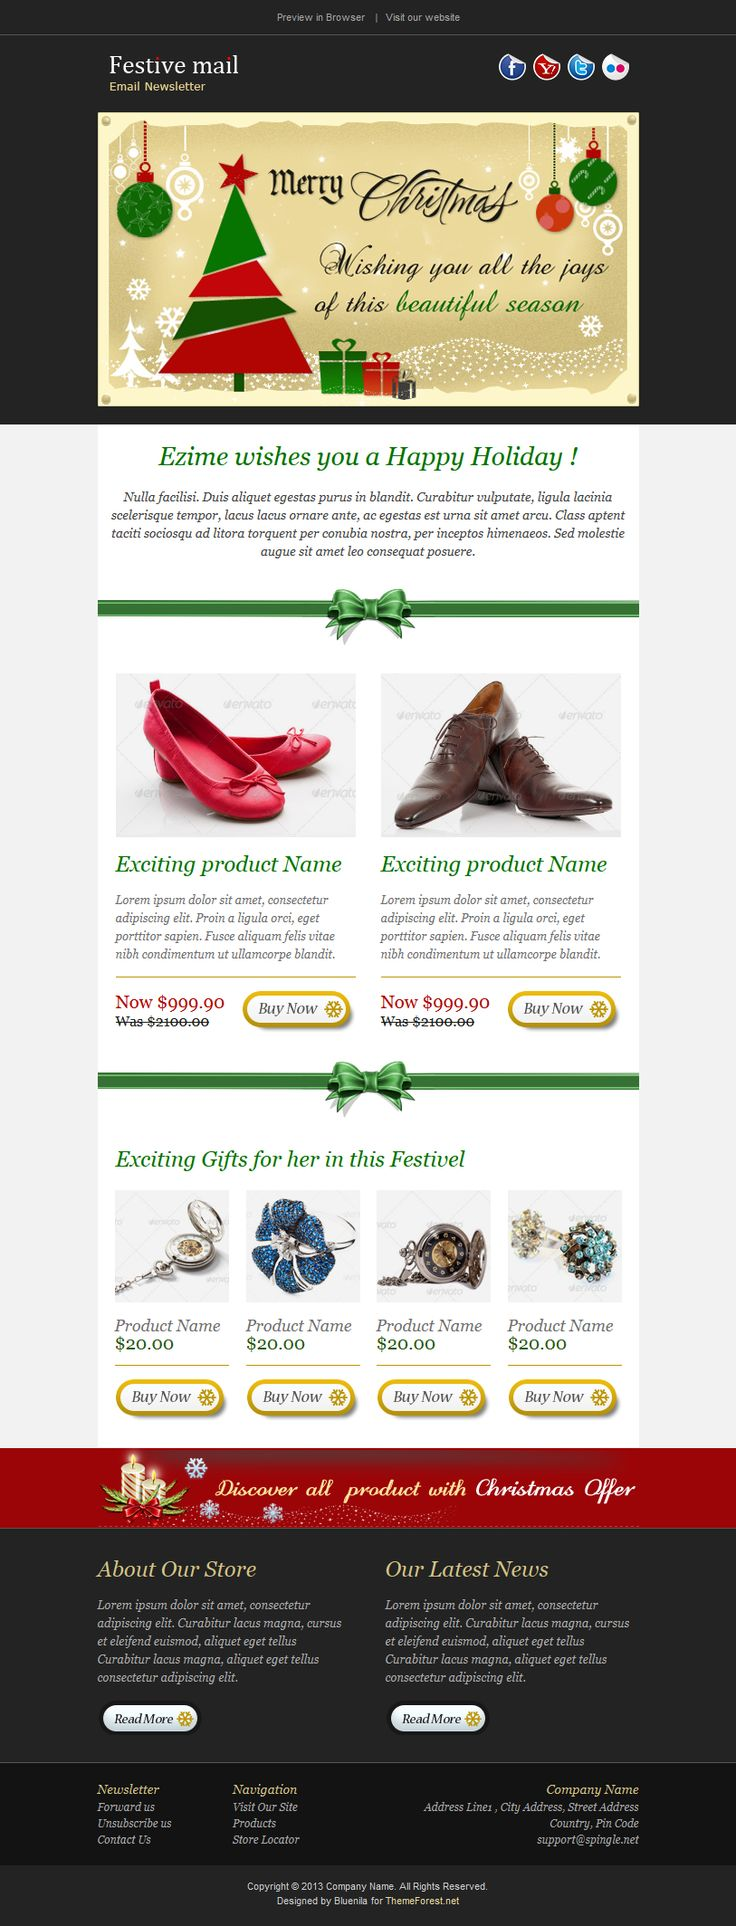 Vintage Holiday Newsletter Template For You In This Festive Season